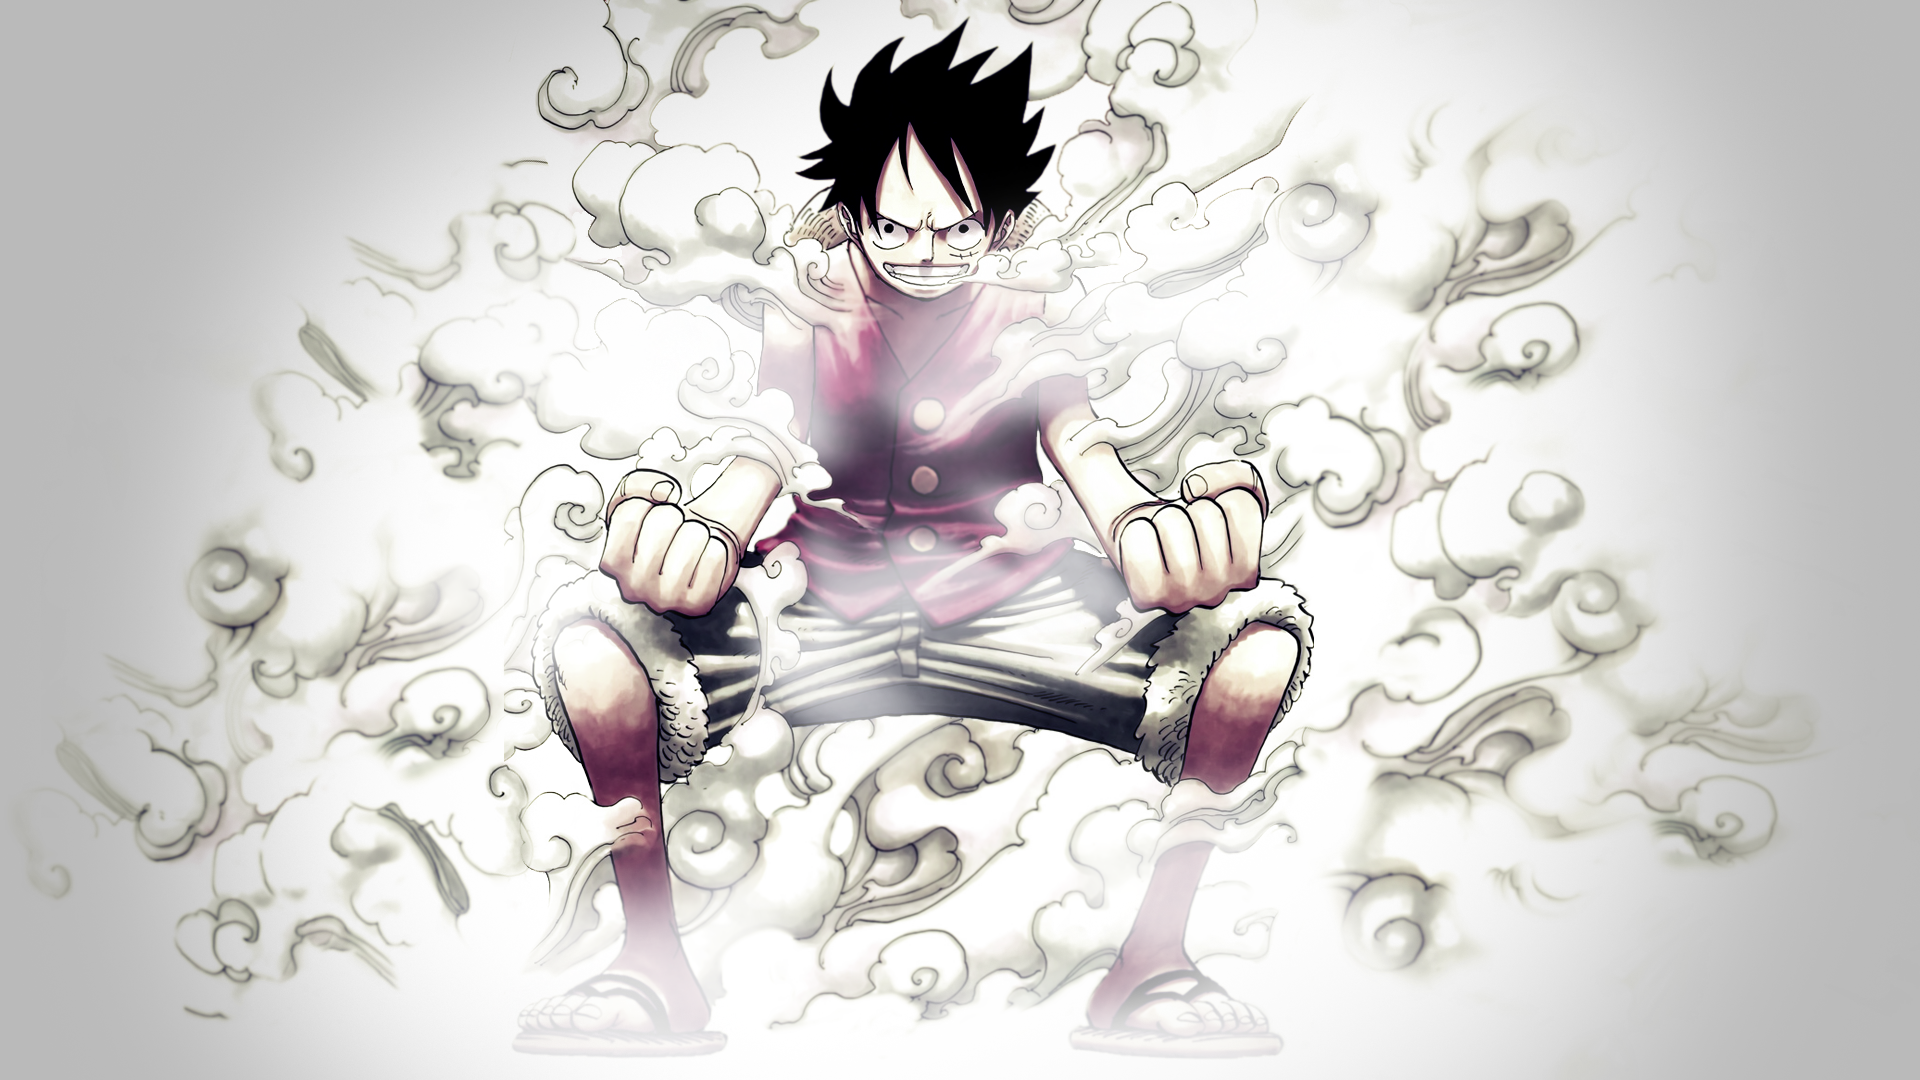 One Piece Luffy Wallpapers High Definition Luffy One Piece Wallpaper Iphone One Piece Anime